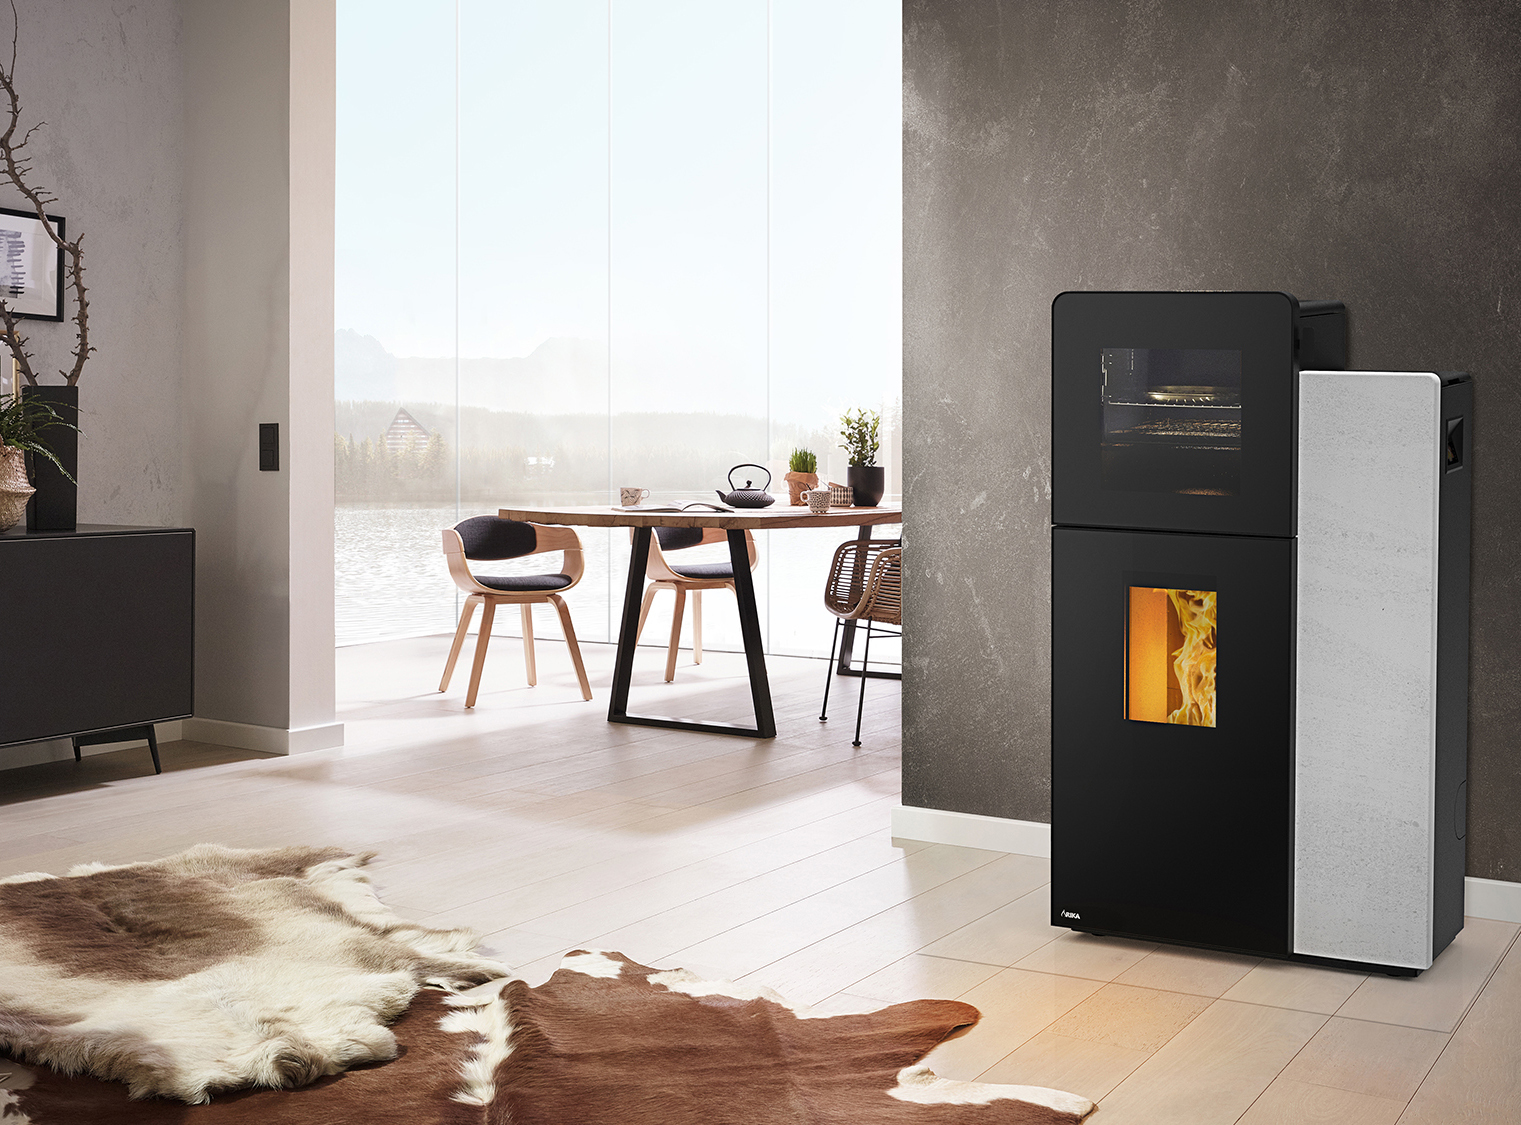 DOMO BACK pelletstove